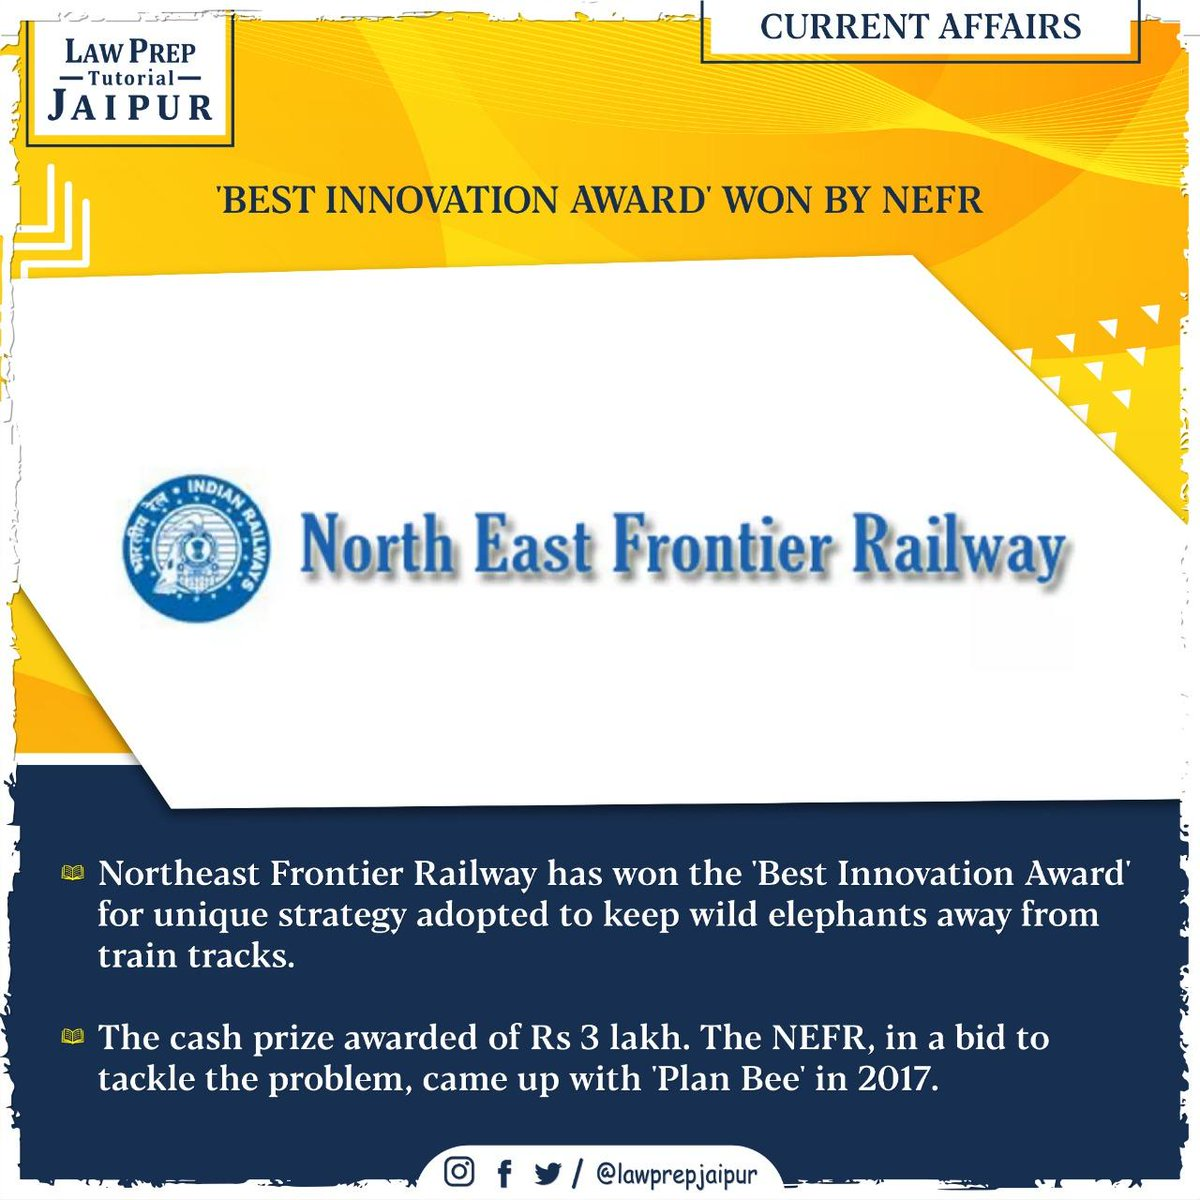 Stay connected for more such Current Affairs.  #Gk #CLATGK #CLAT2020 #CLATQuestions #currentaffairs #LegalGk #BestInnovationAward #NorthEastRailway